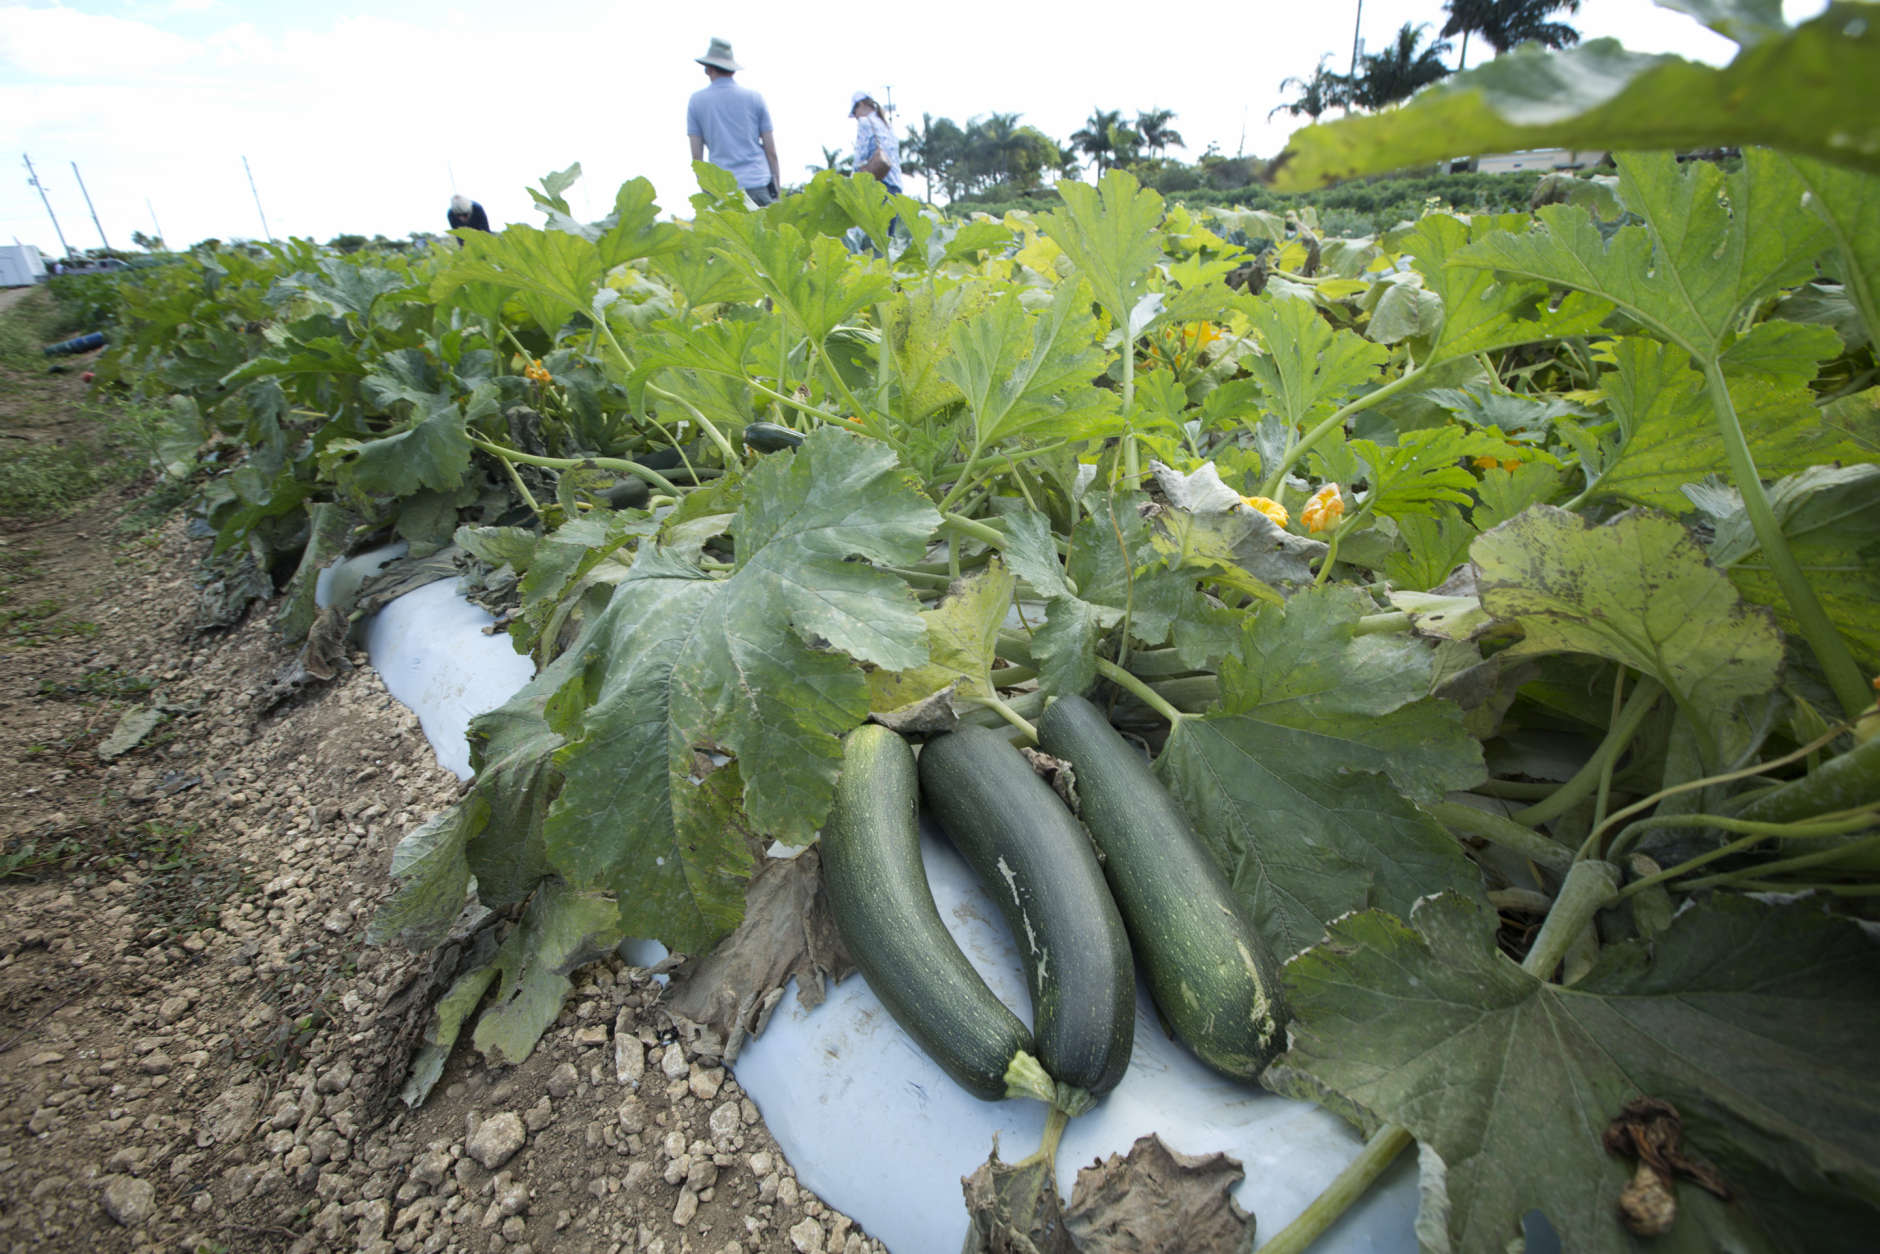 Large zucchini wait to be picked at he u-pick field at the Curbside Market in Homestead, Fla. Sunday, Feb. 3, 2013. The farm has been in operation for over 42 years. The growing season last from Dec. to May, for squash, tomatoes and strawberries. (AP Photo/J Pat Carter)